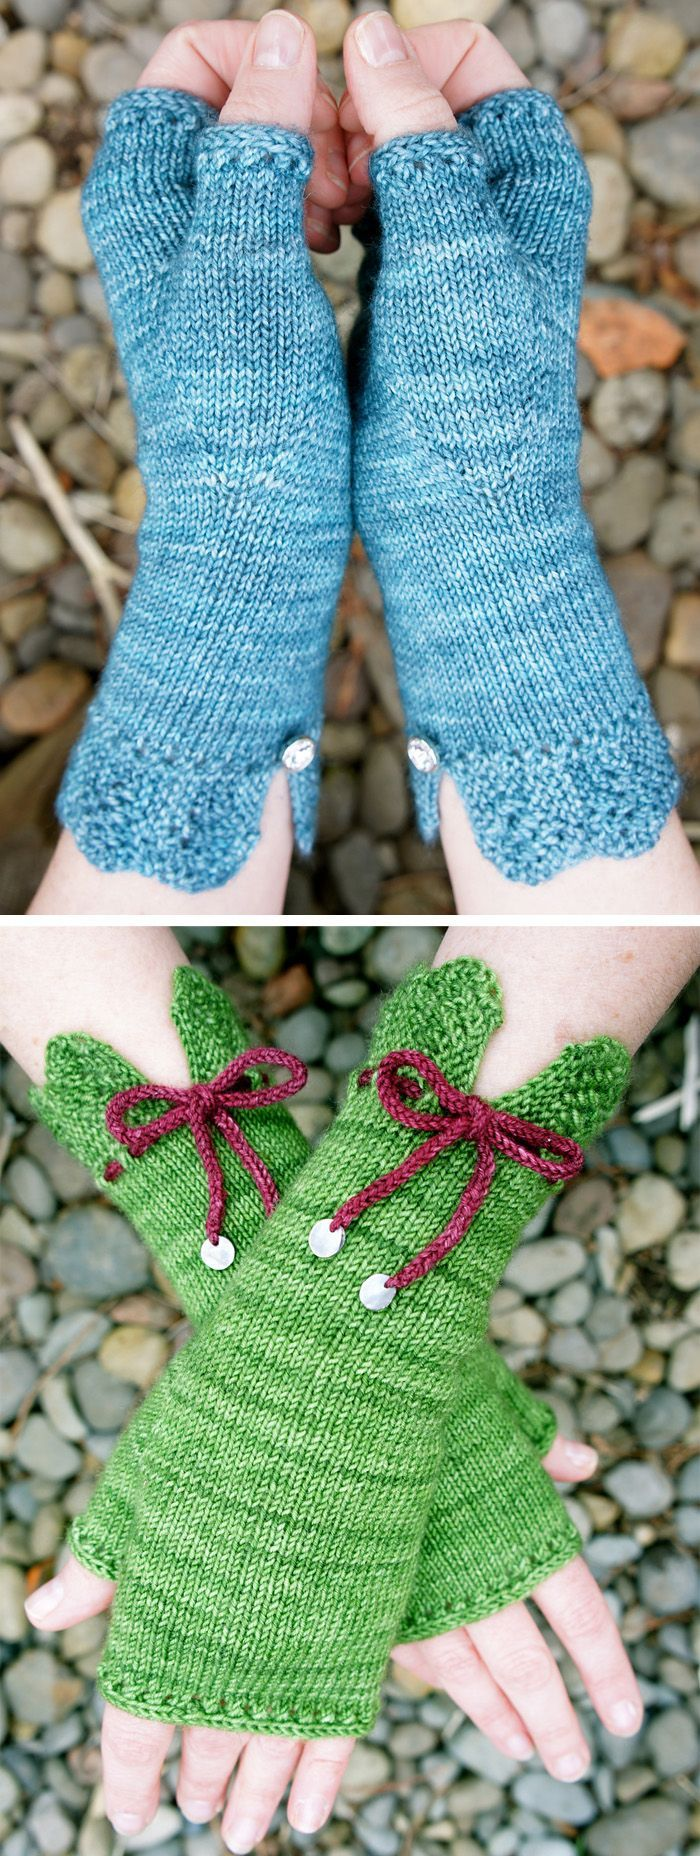 Free Knitting Pattern for Felicity Mitts - These fingerless gloves feature a lace-trimmed cuff, eyelet detailing, and I-cord edging at palm and thumb. Add buttons or I-cord laces at the cuffs for extra style. Three sizes. Uses 200 – 250 yards of the recommended yarn. Designed by Cloud House Studio